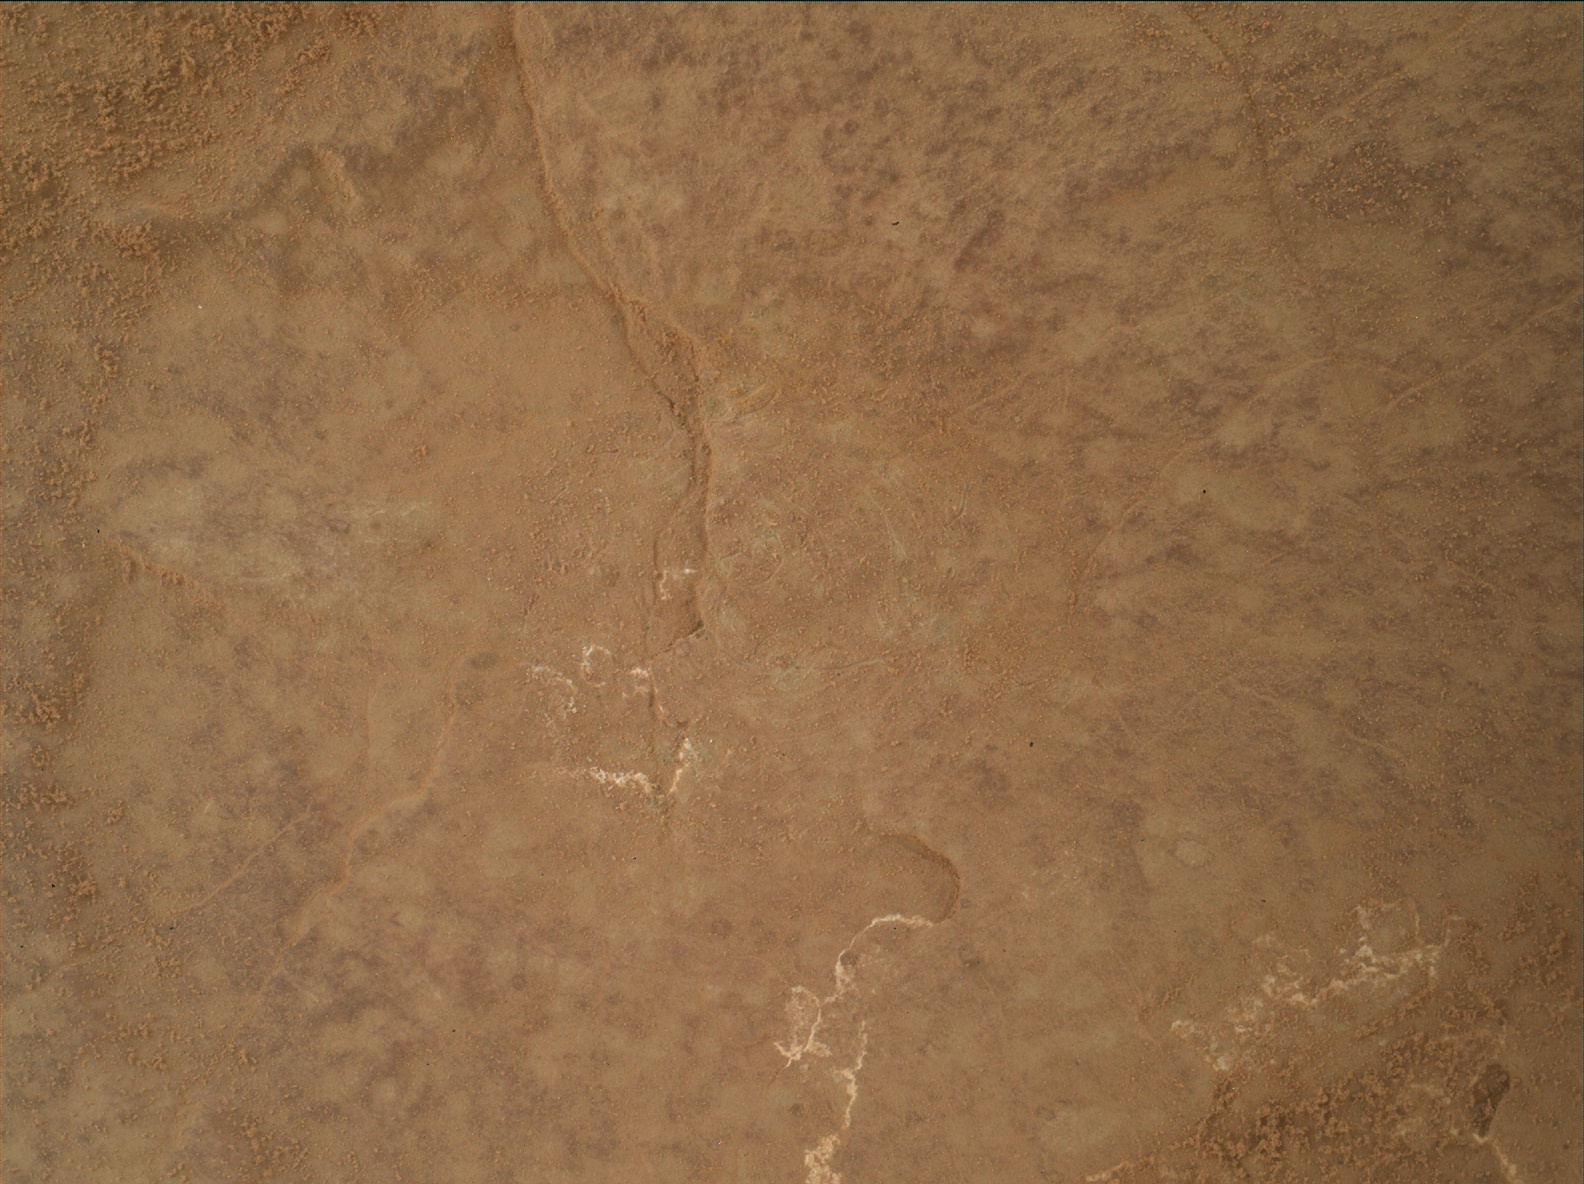 Nasa's Mars rover Curiosity acquired this image using its Mars Hand Lens Imager (MAHLI) on Sol 3025